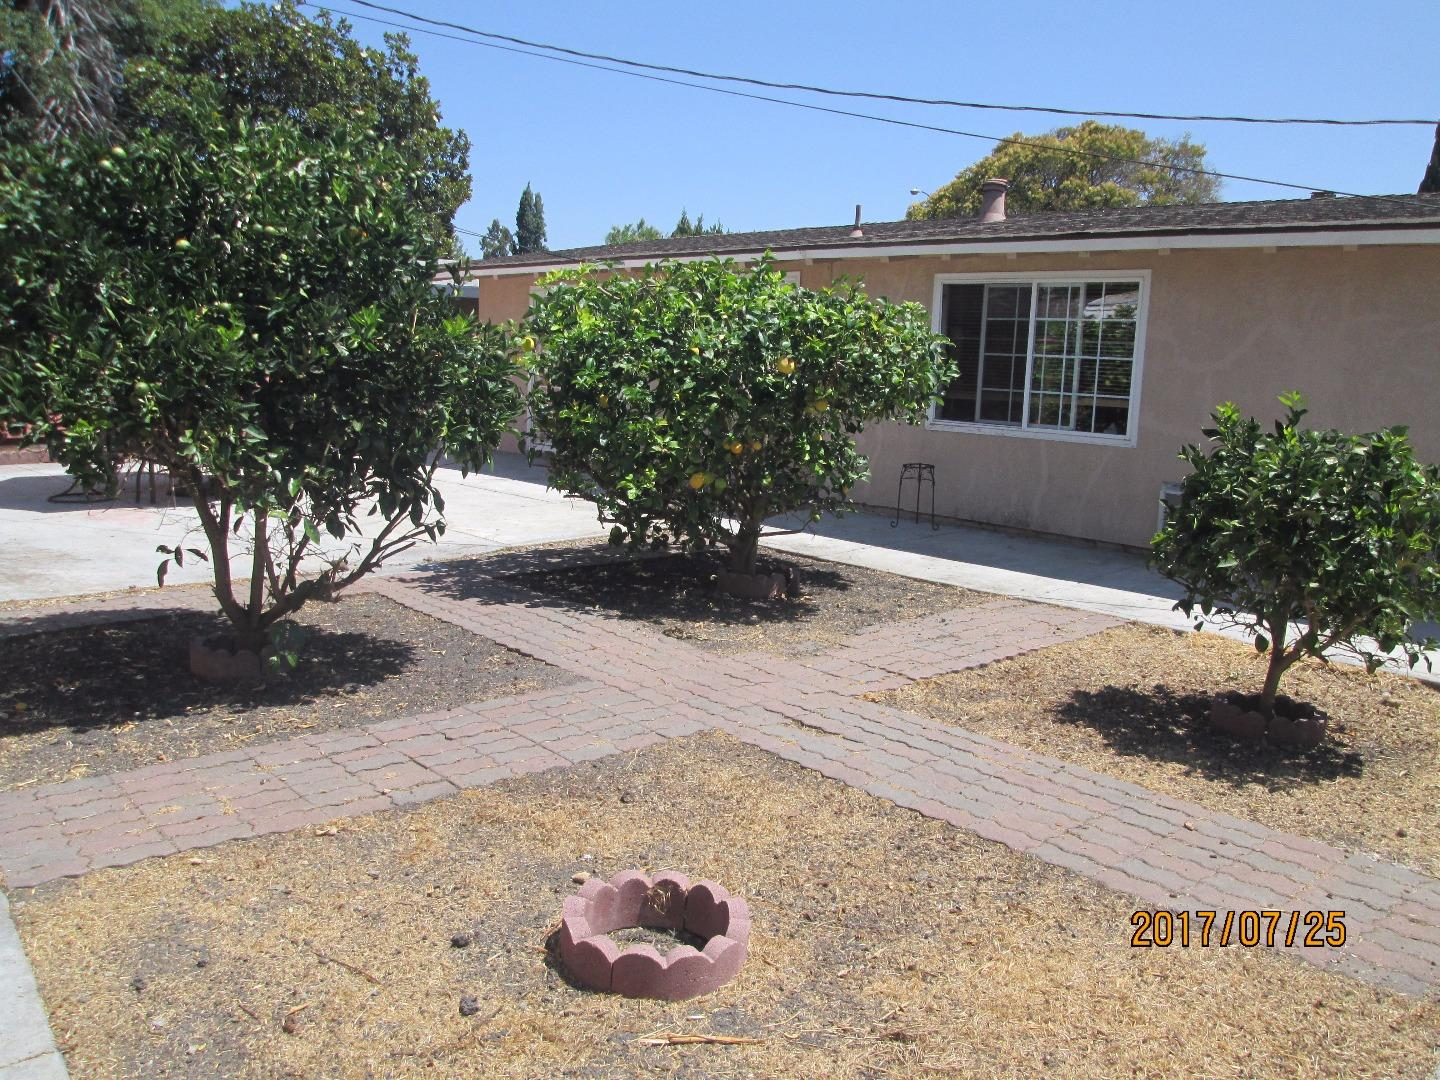 Additional photo for property listing at 1266 Manzano Way  Sunnyvale, California 94089 Estados Unidos